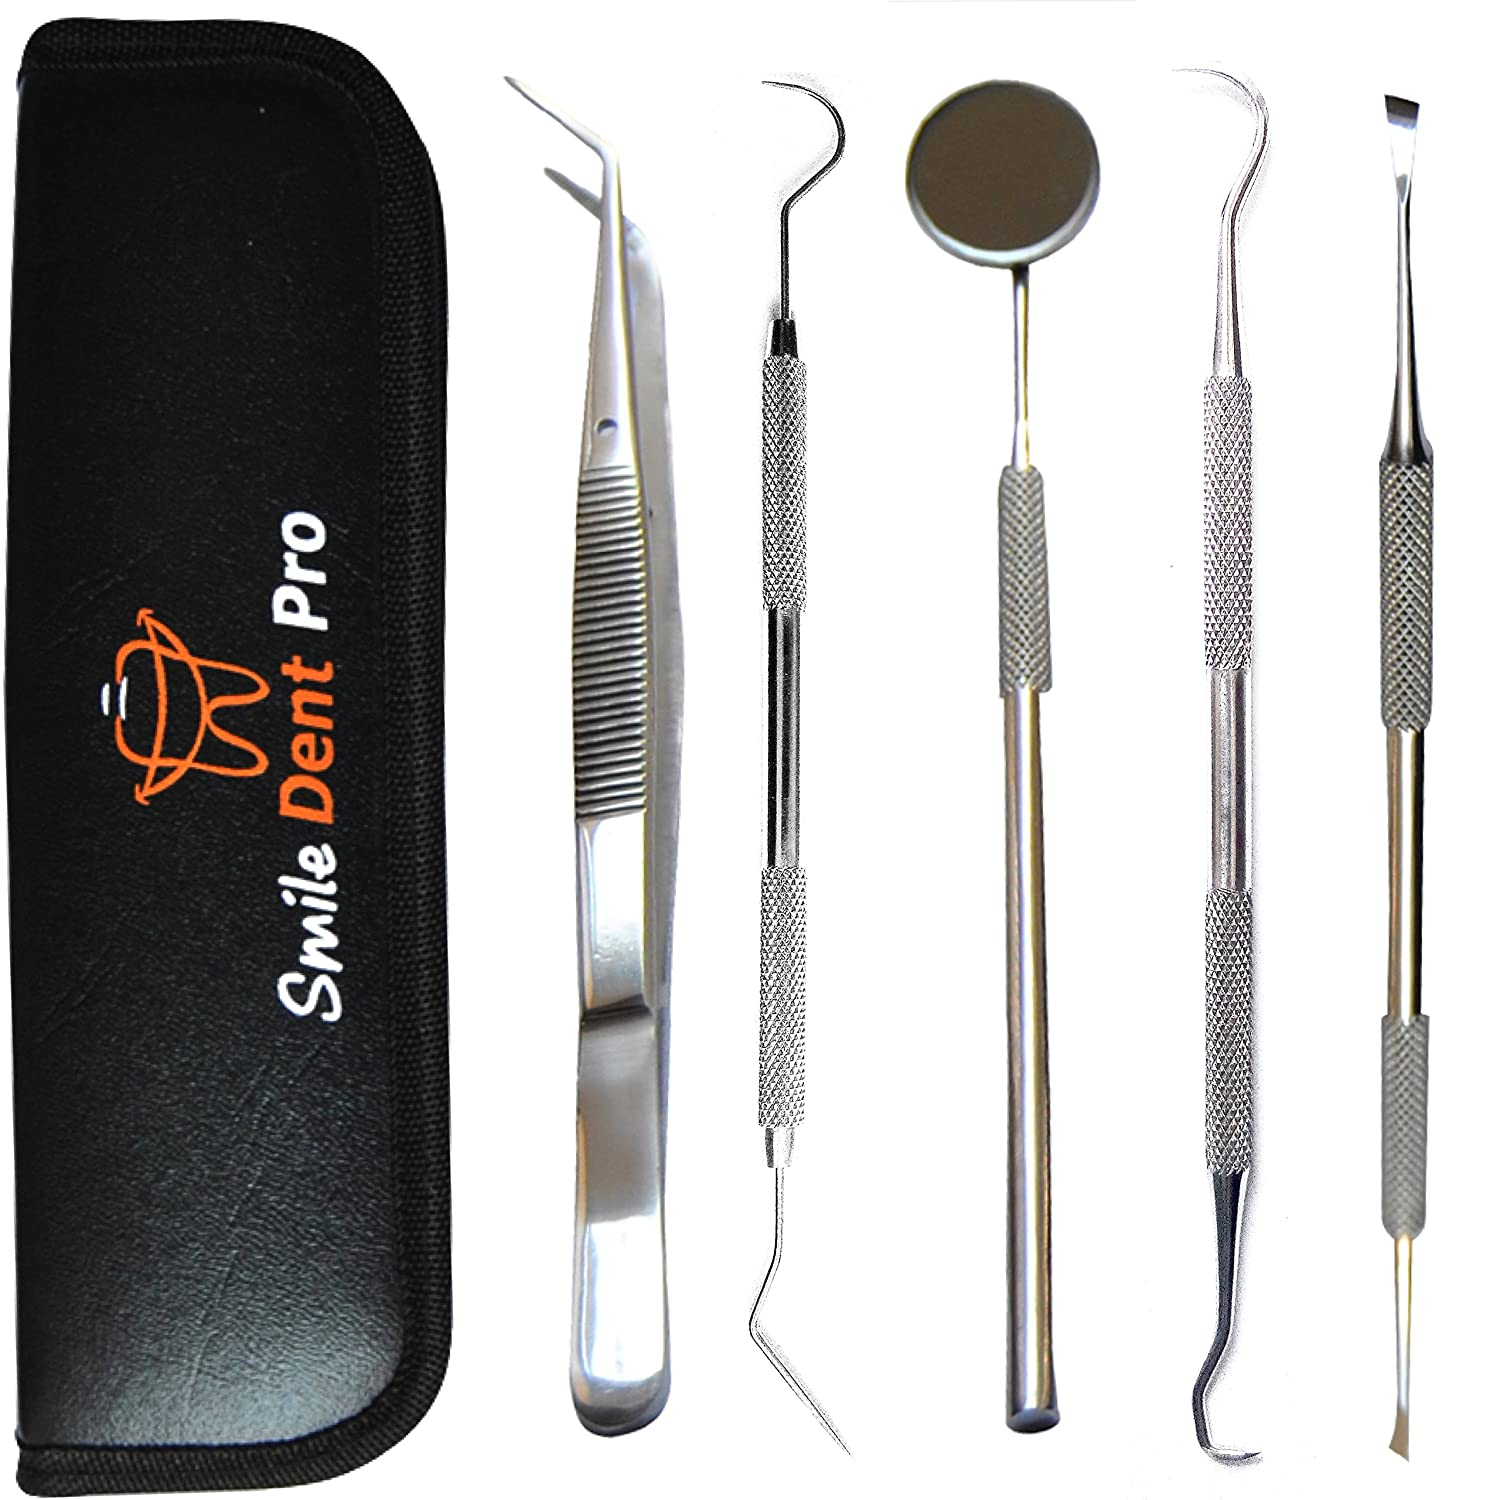 Dentist Tools Kit | Dental Tools Dental Pick Dental Floss Gum Floss Threaders Toothpicks dental Hygiene Kit Set Dental Instruments High Grade Stainless Steel Tartar Scraper Tartar Remover